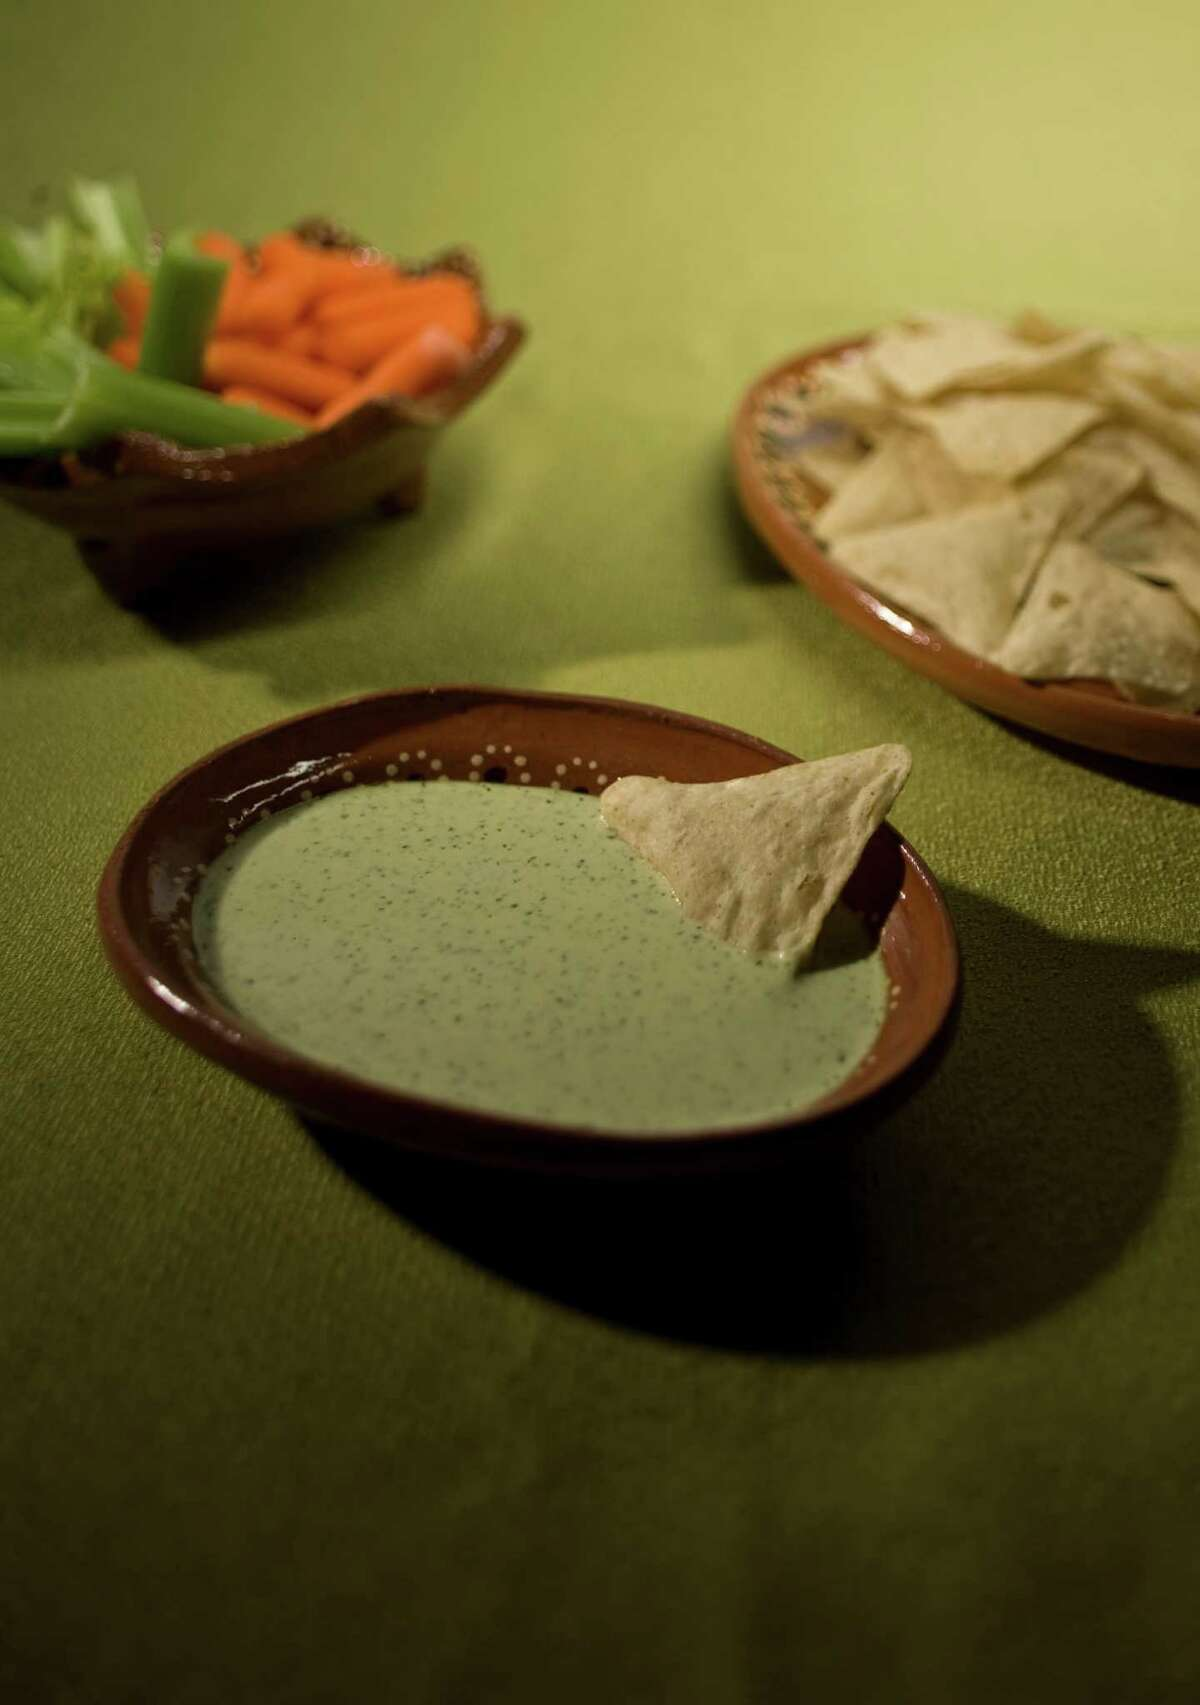 Chuy's creamy jalapeno dip is just the right combination of hot and cool.